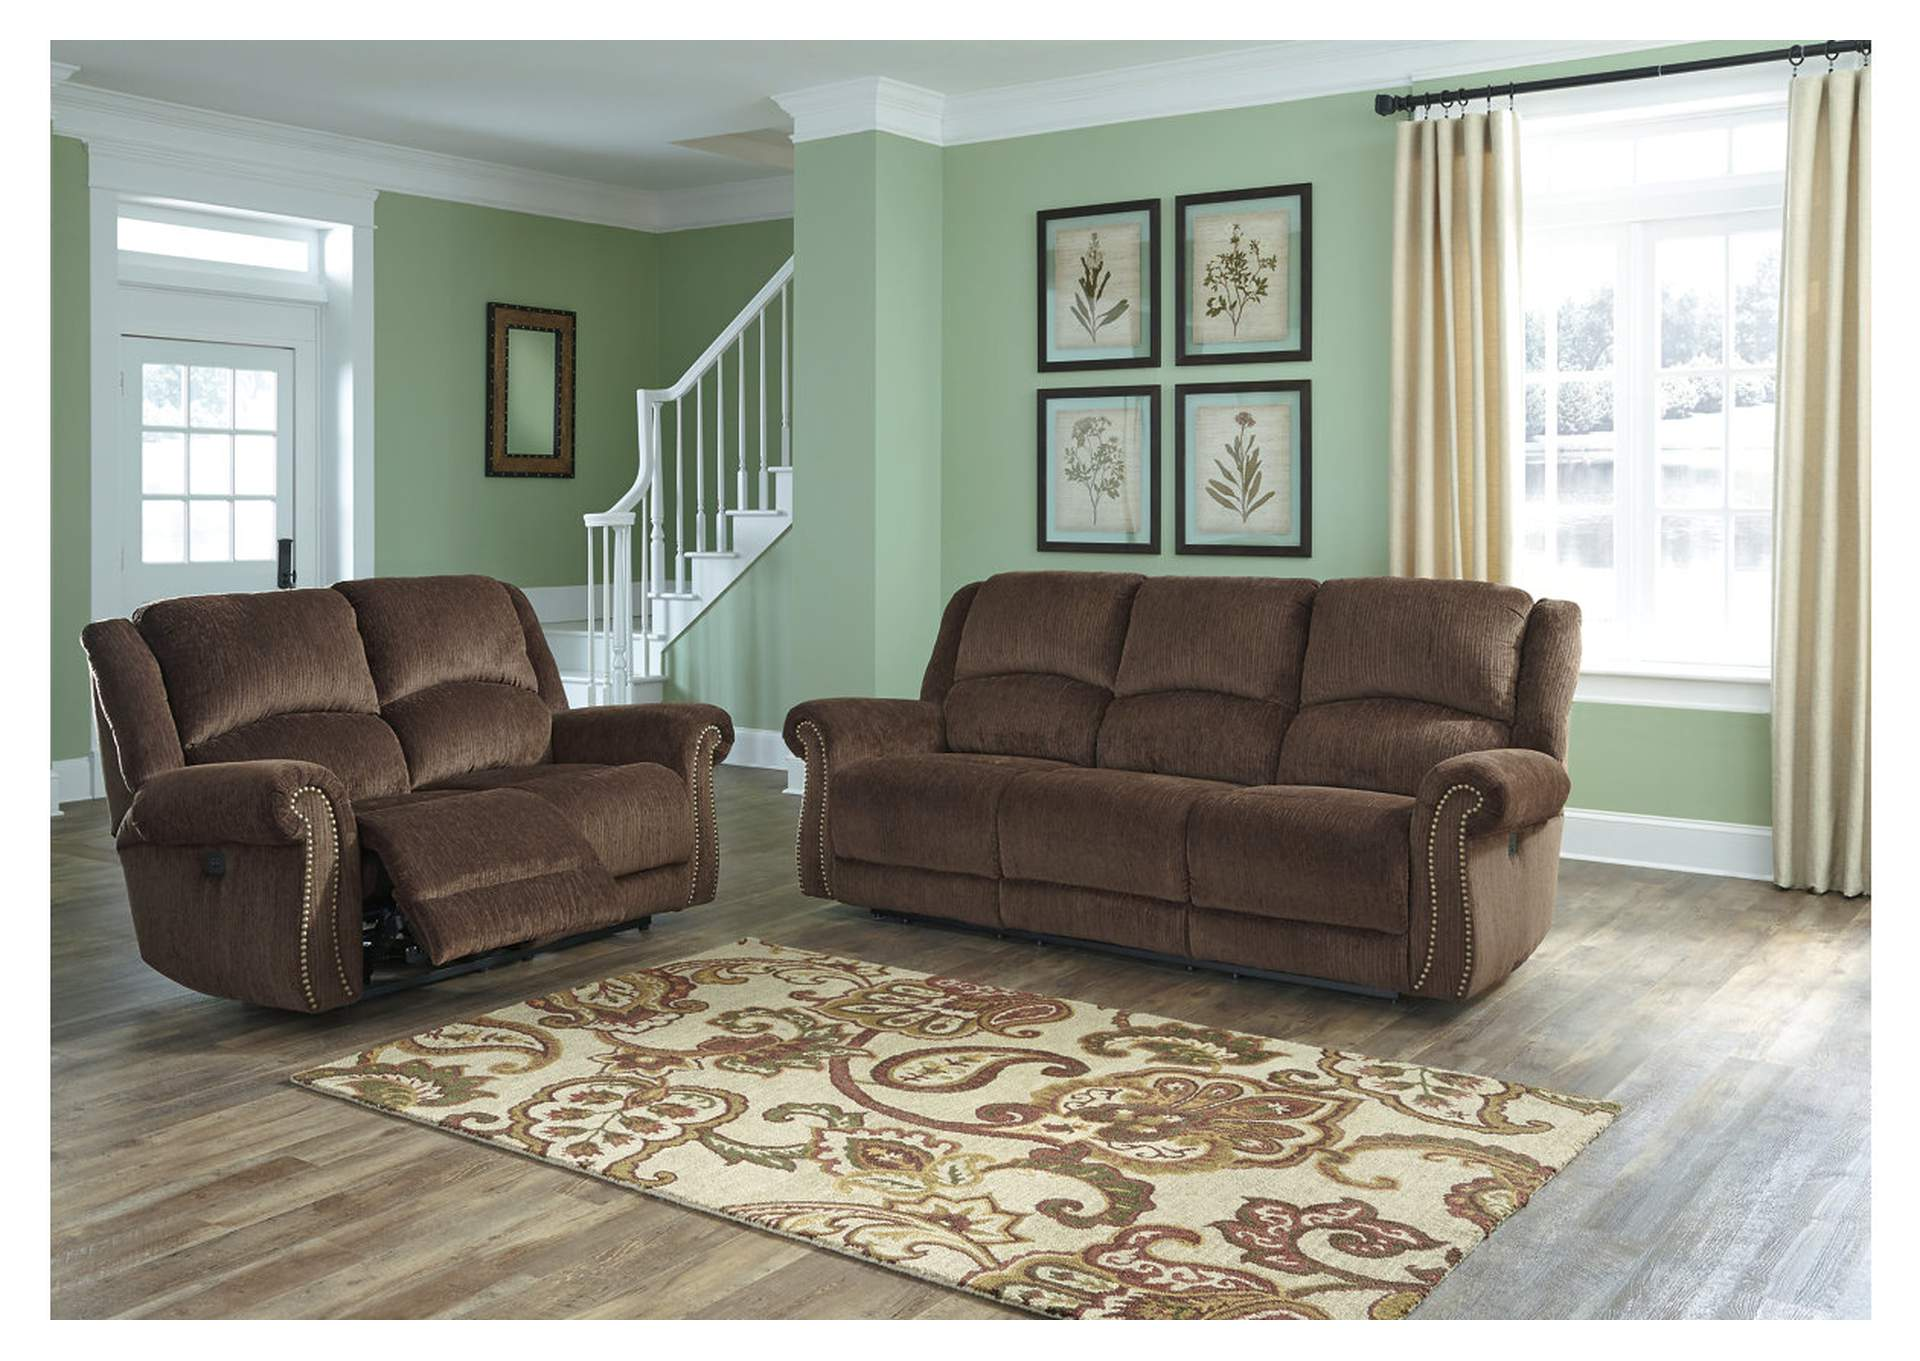 Goodlow Chocolate Power Reclining Sofa U0026 Loveseat,Signature Design By Ashley